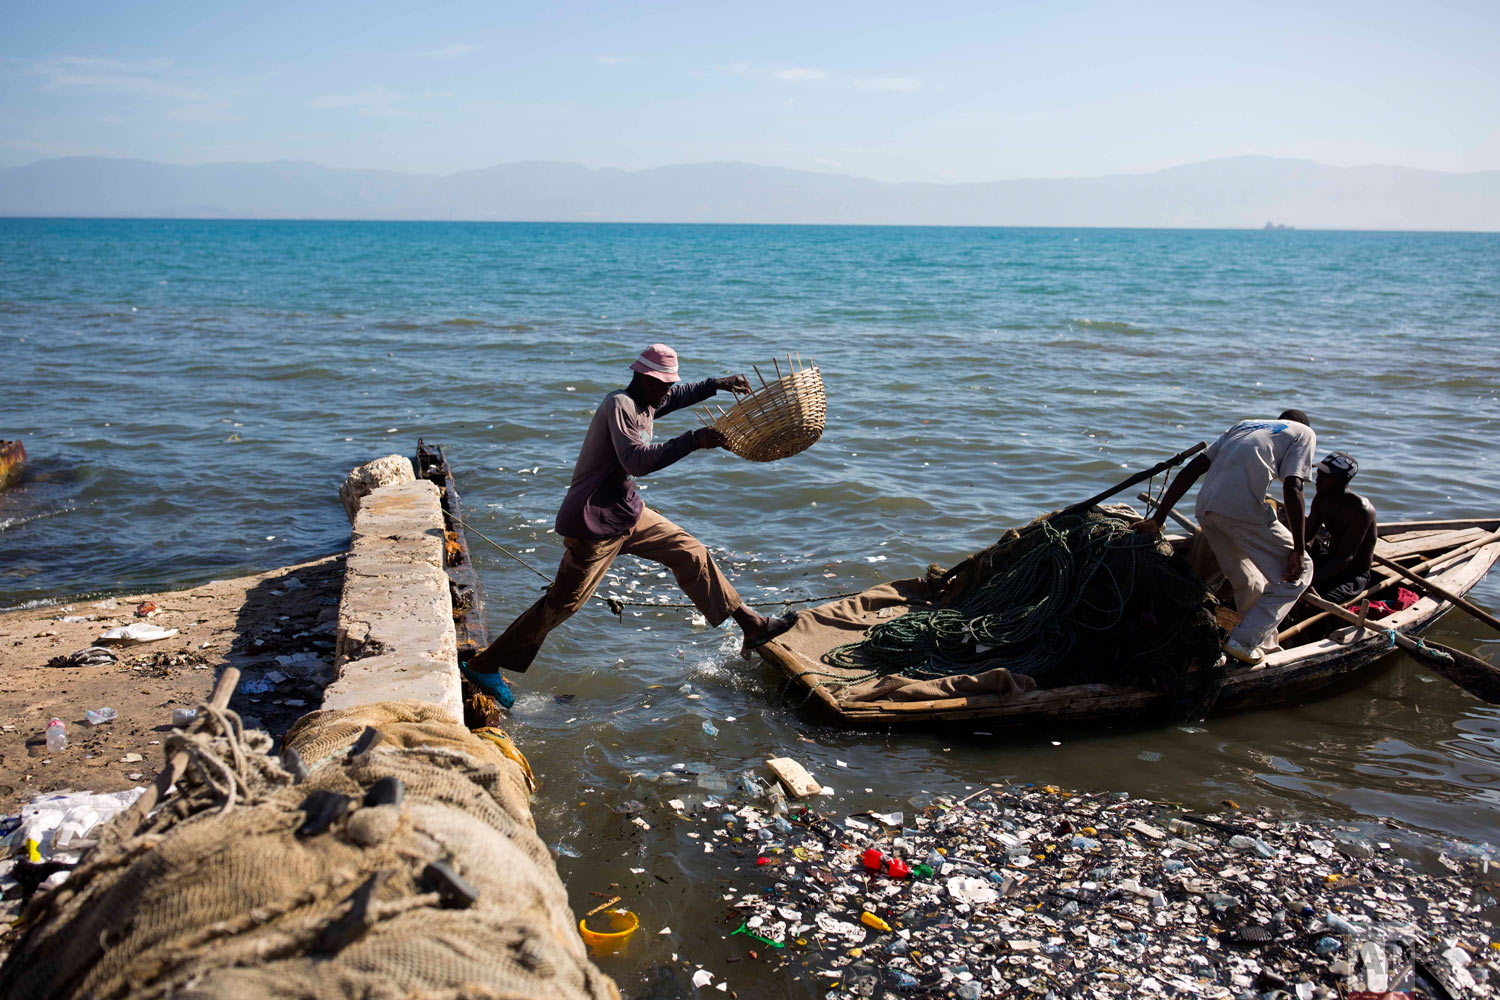 A fisherman jumps on to his wooden boat, joining his mates as they head out to the sea from Port-au-Prince, Haiti, Aug. 13, 2018. (AP Photo/Dieu Nalio Chery)